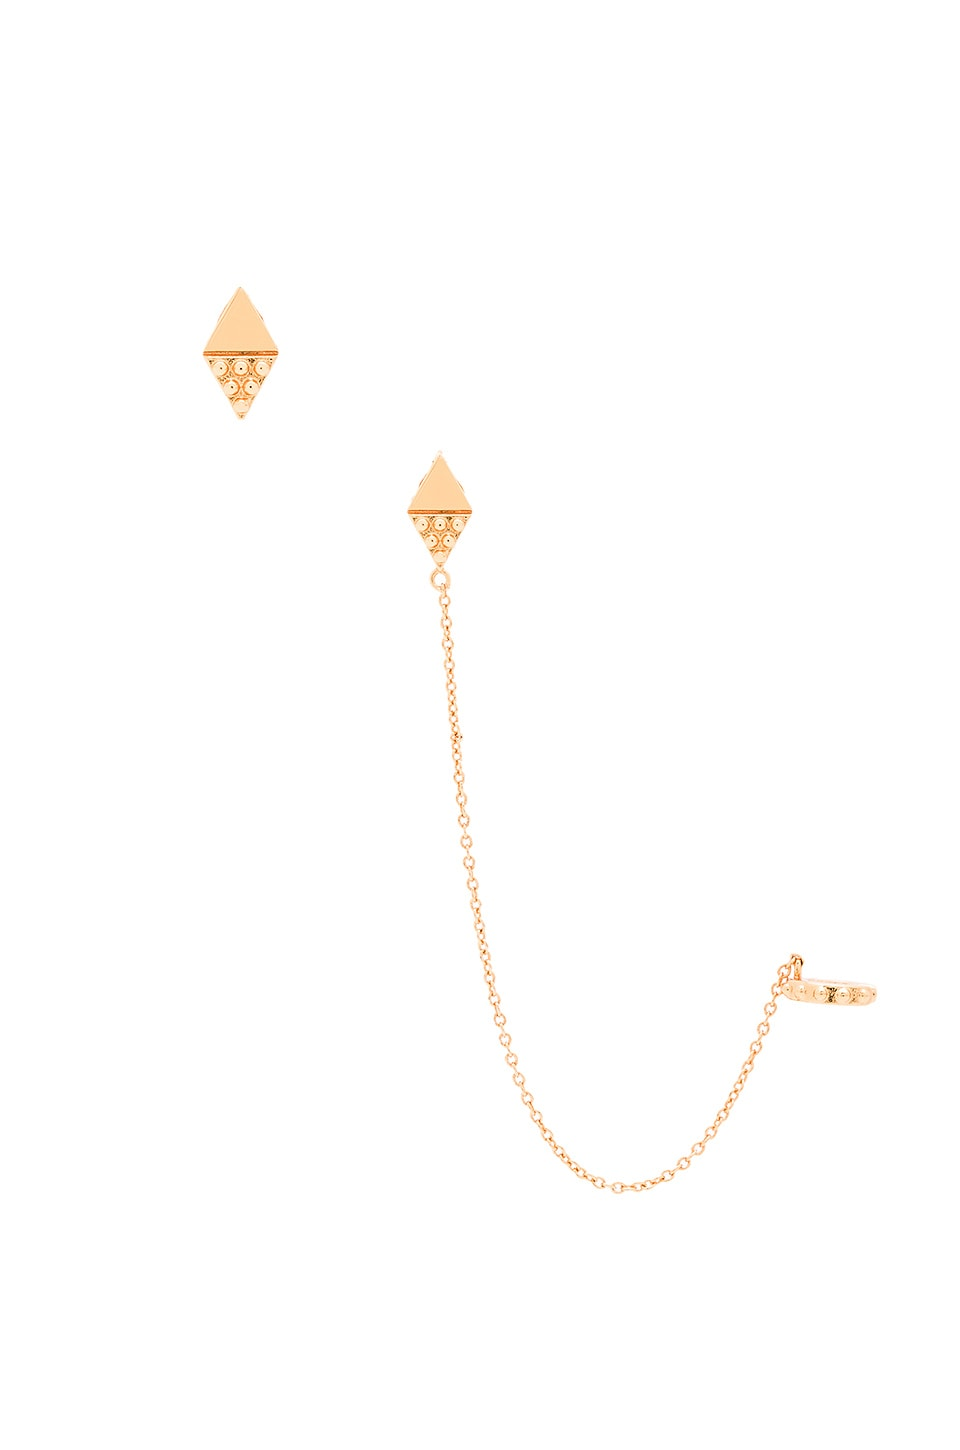 gorjana Bali Diamond Ear Cuff Set in Gold